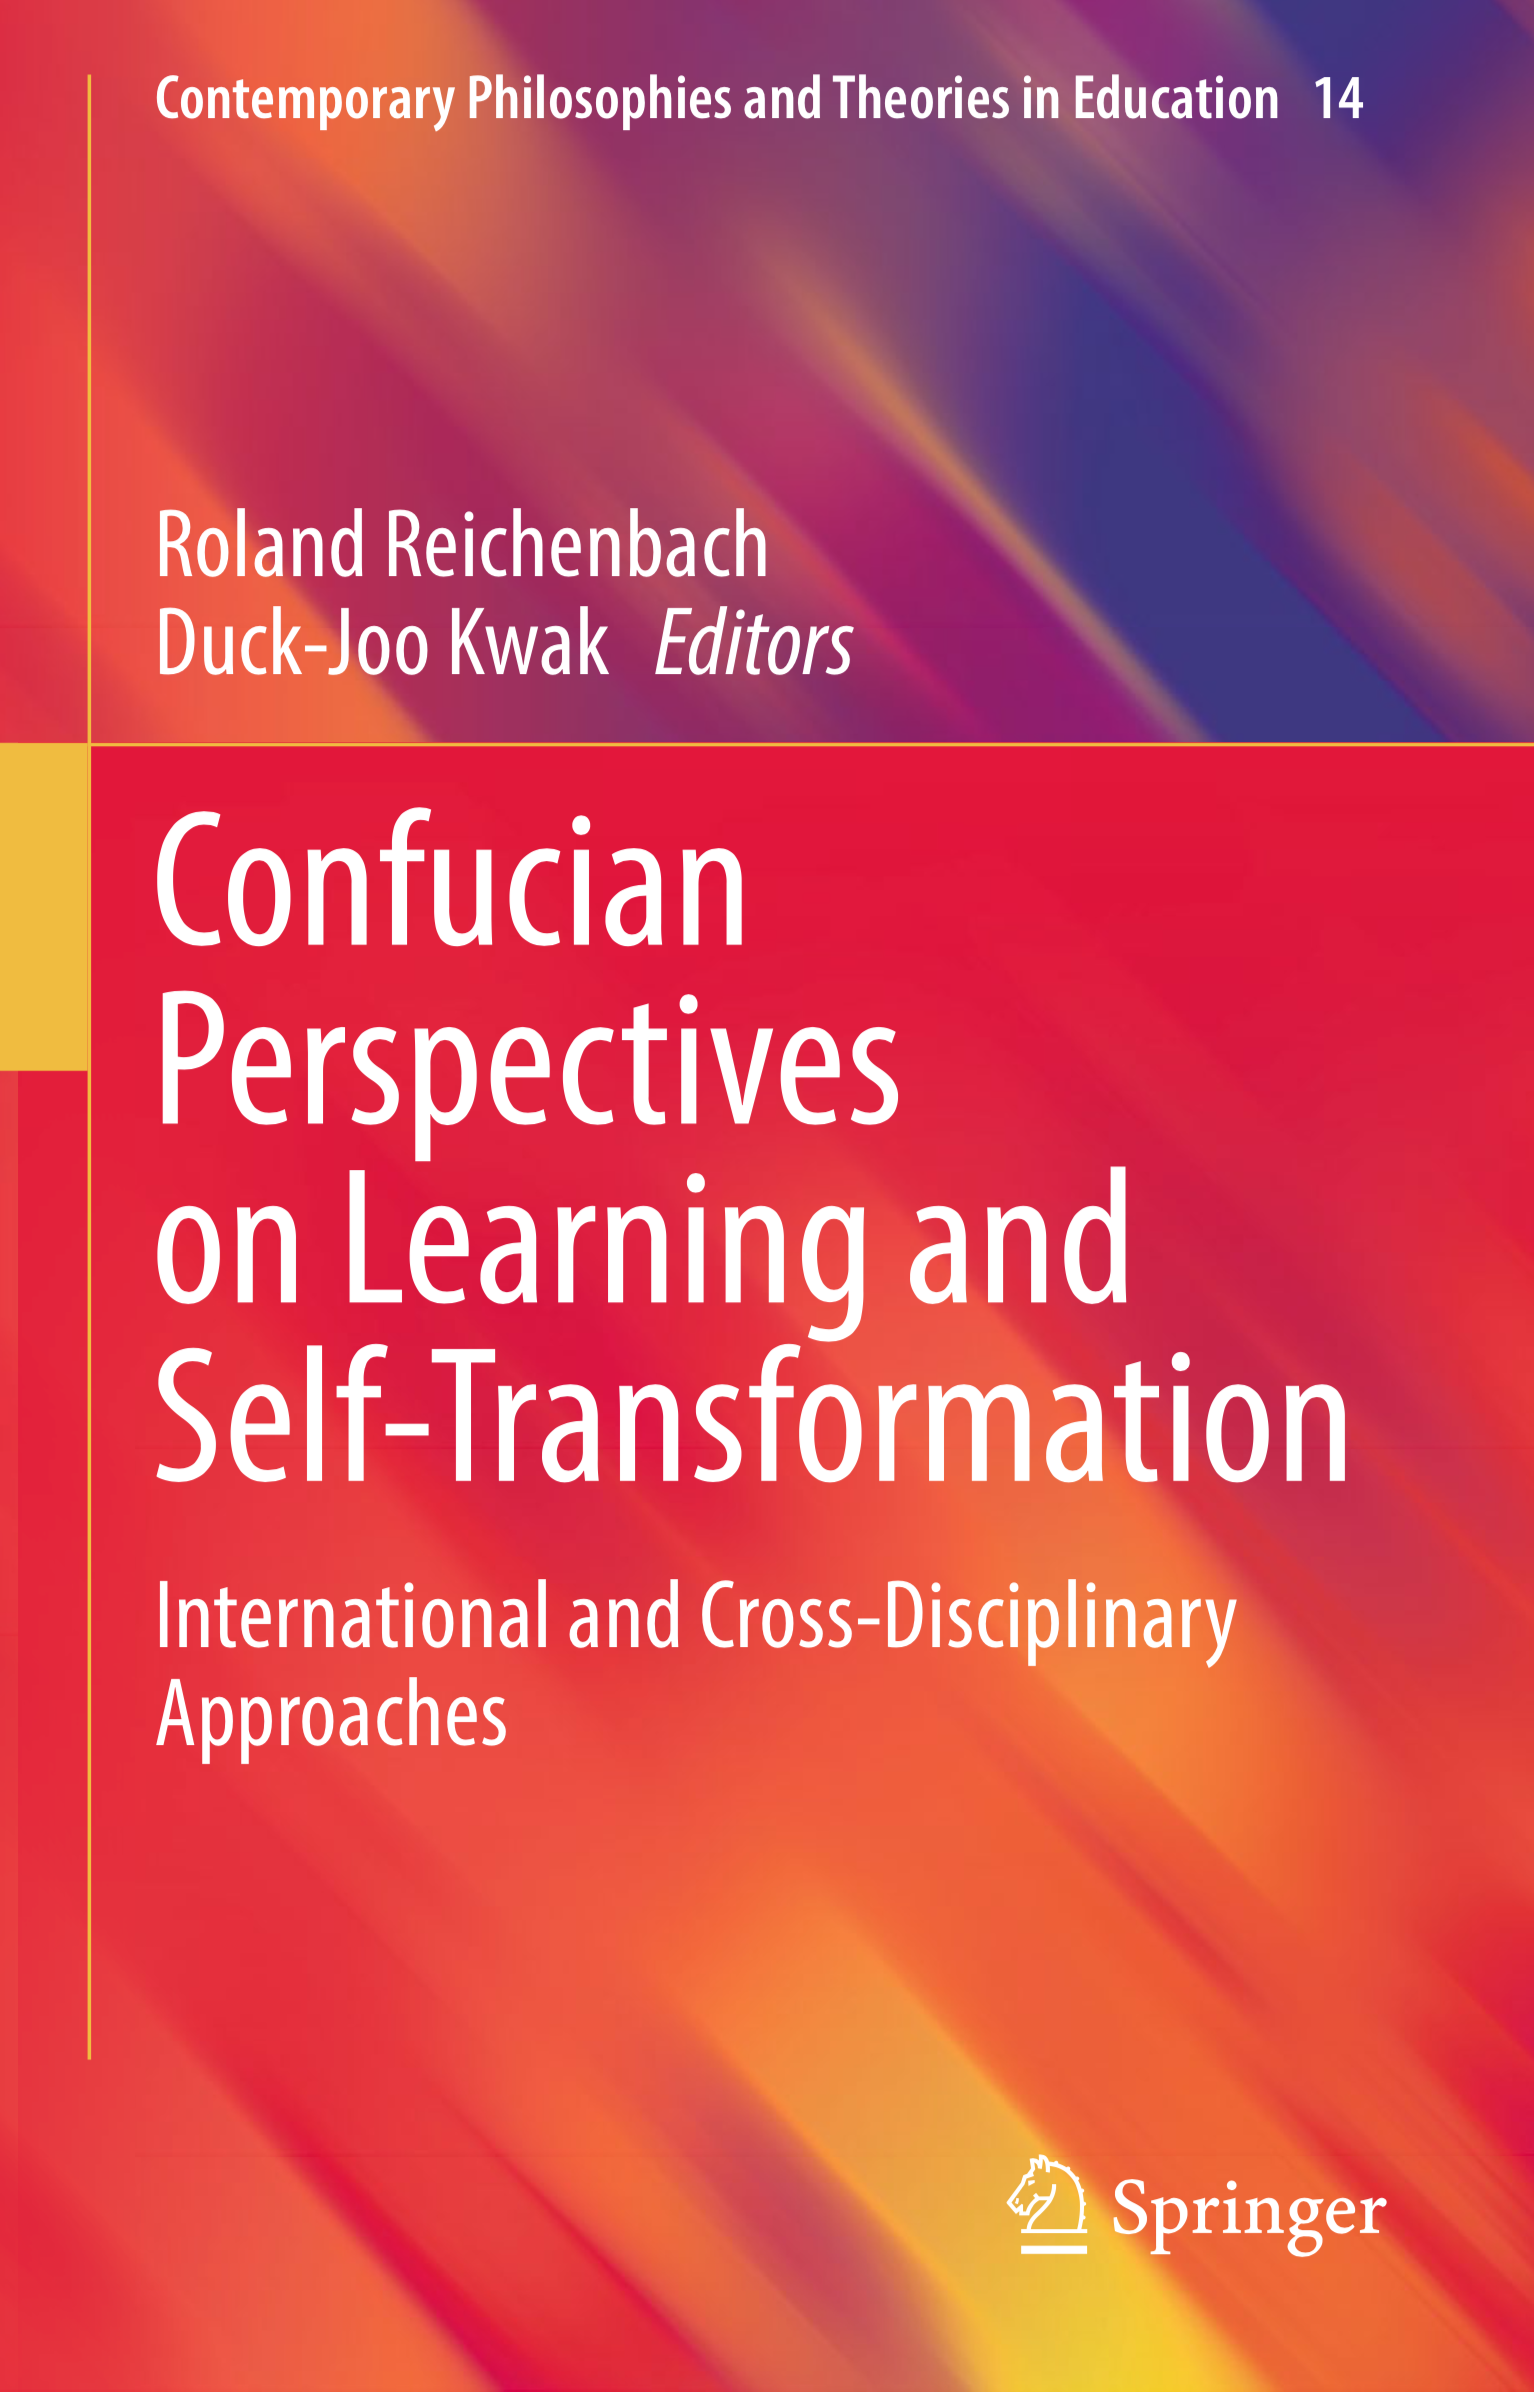 Confucian Perspectives on Learning and Self-Transformation